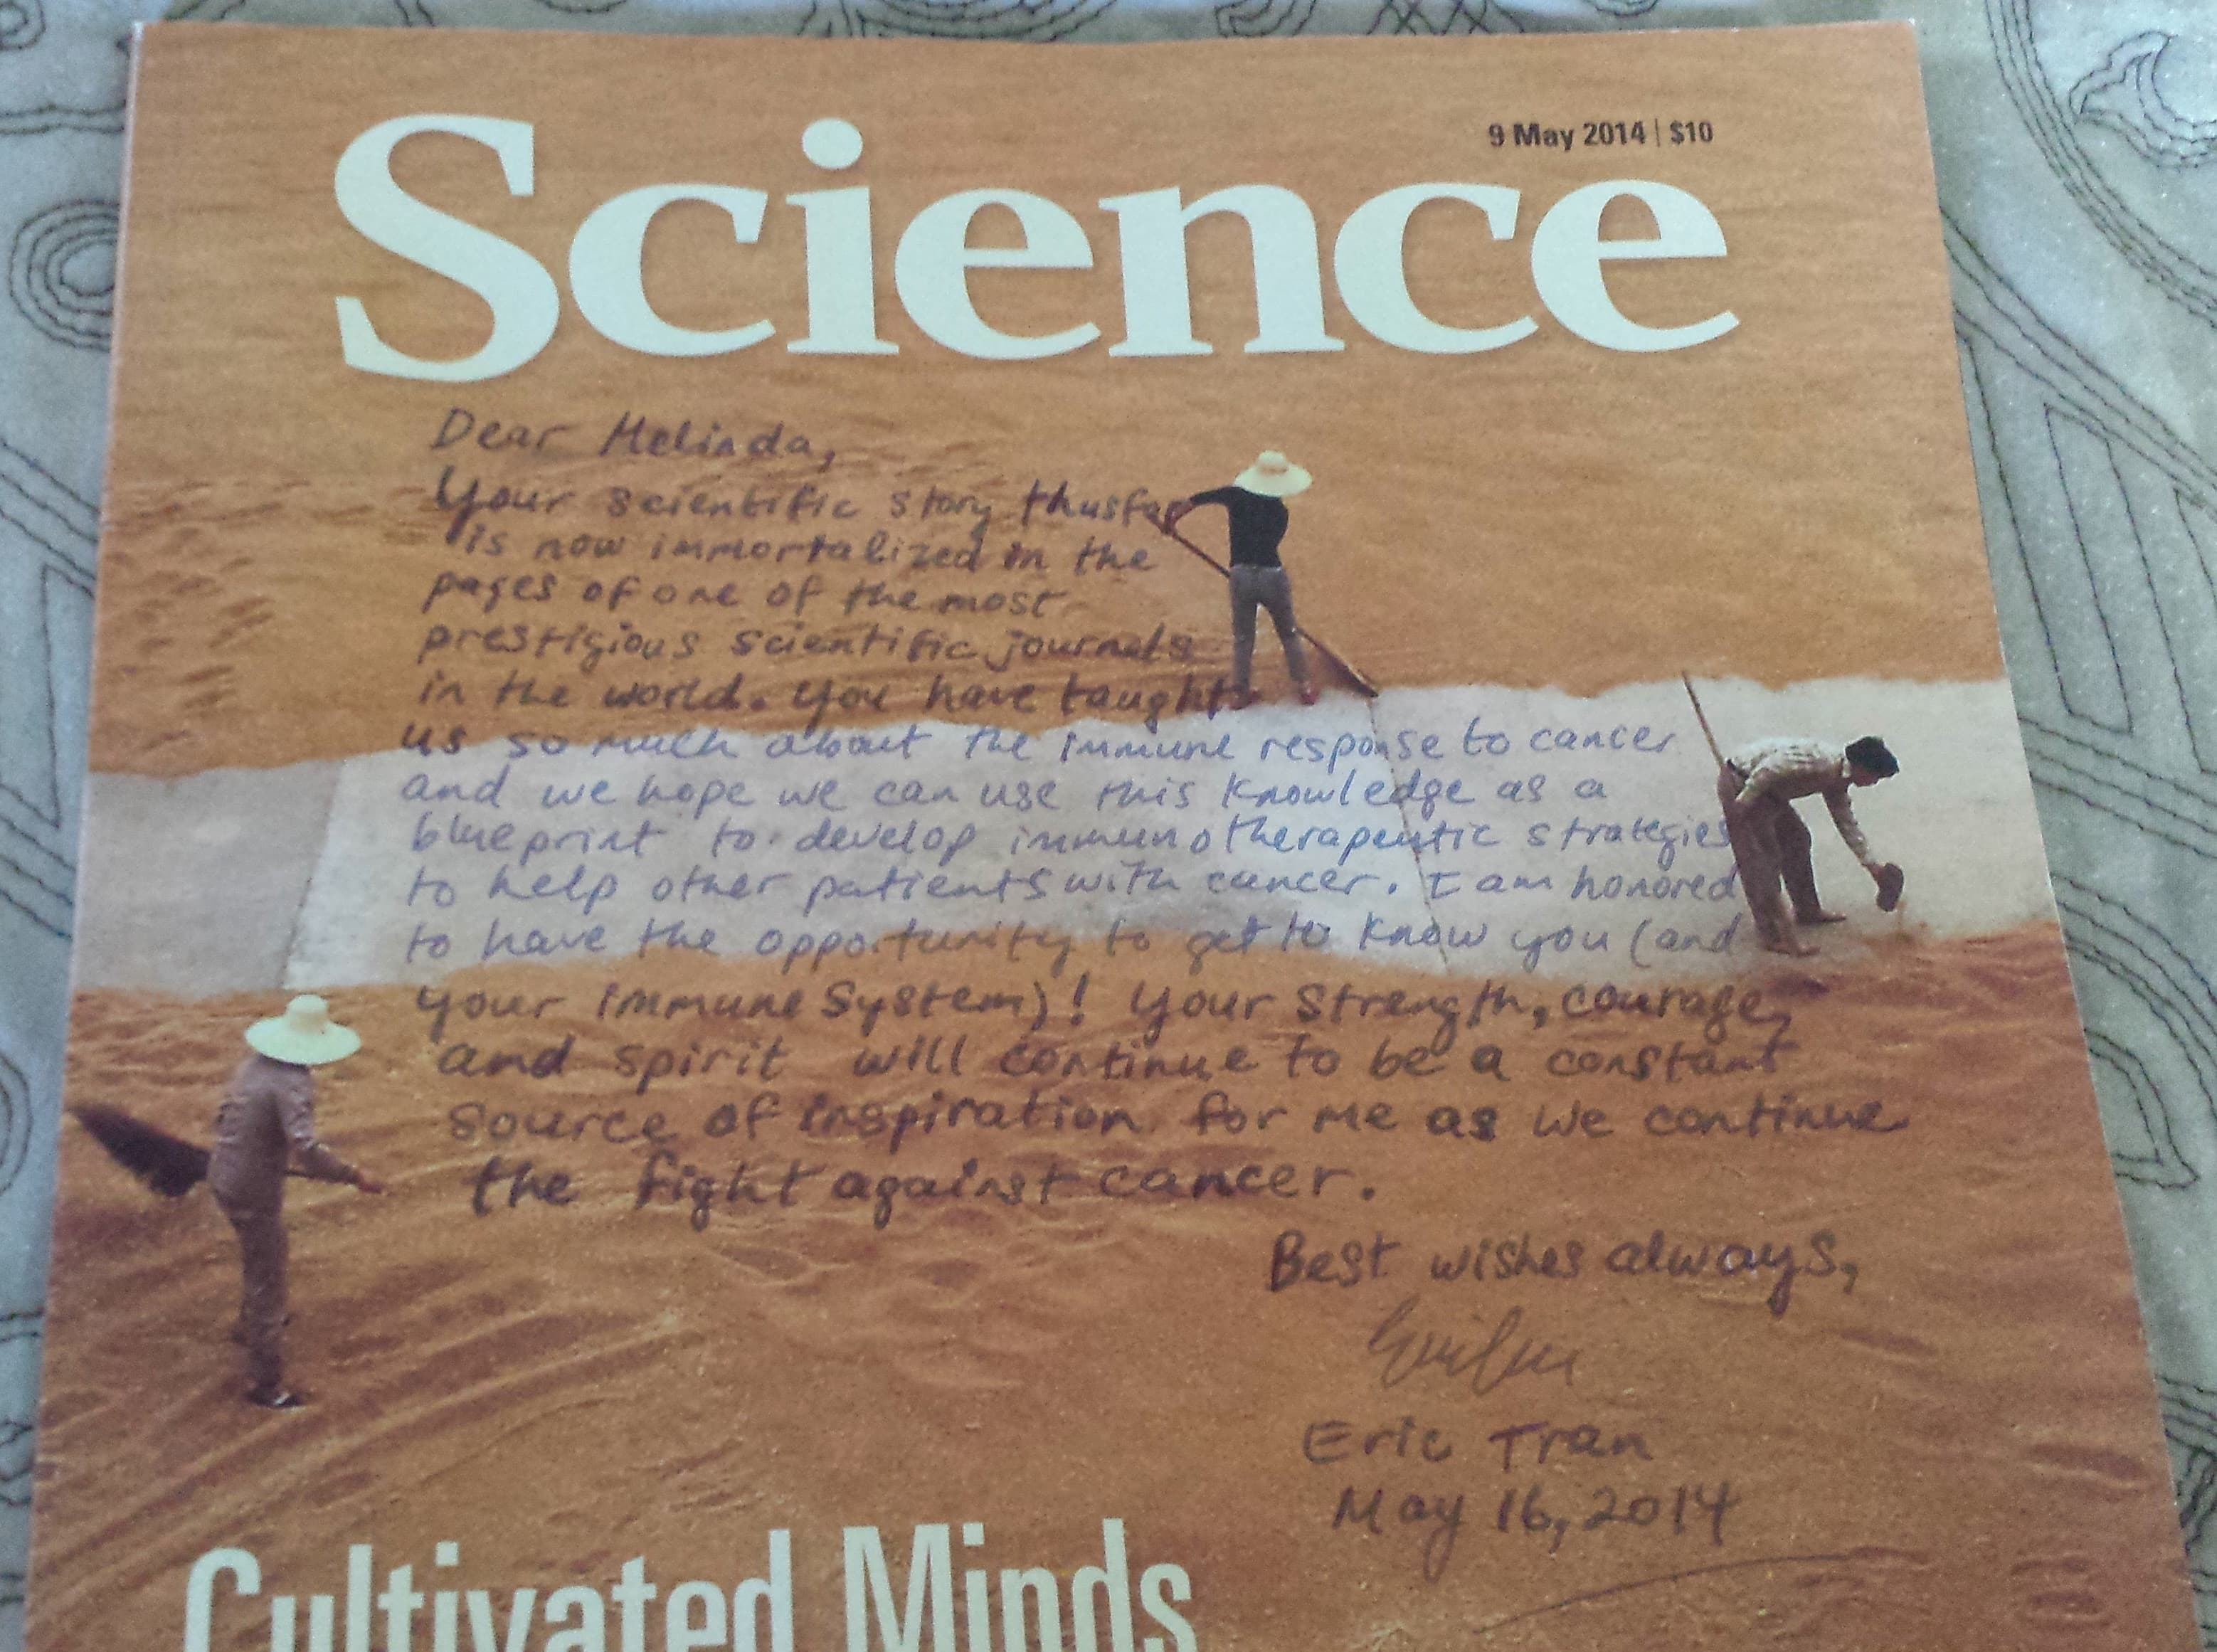 Message written by Dr. Tran on the cover of a Science magazine